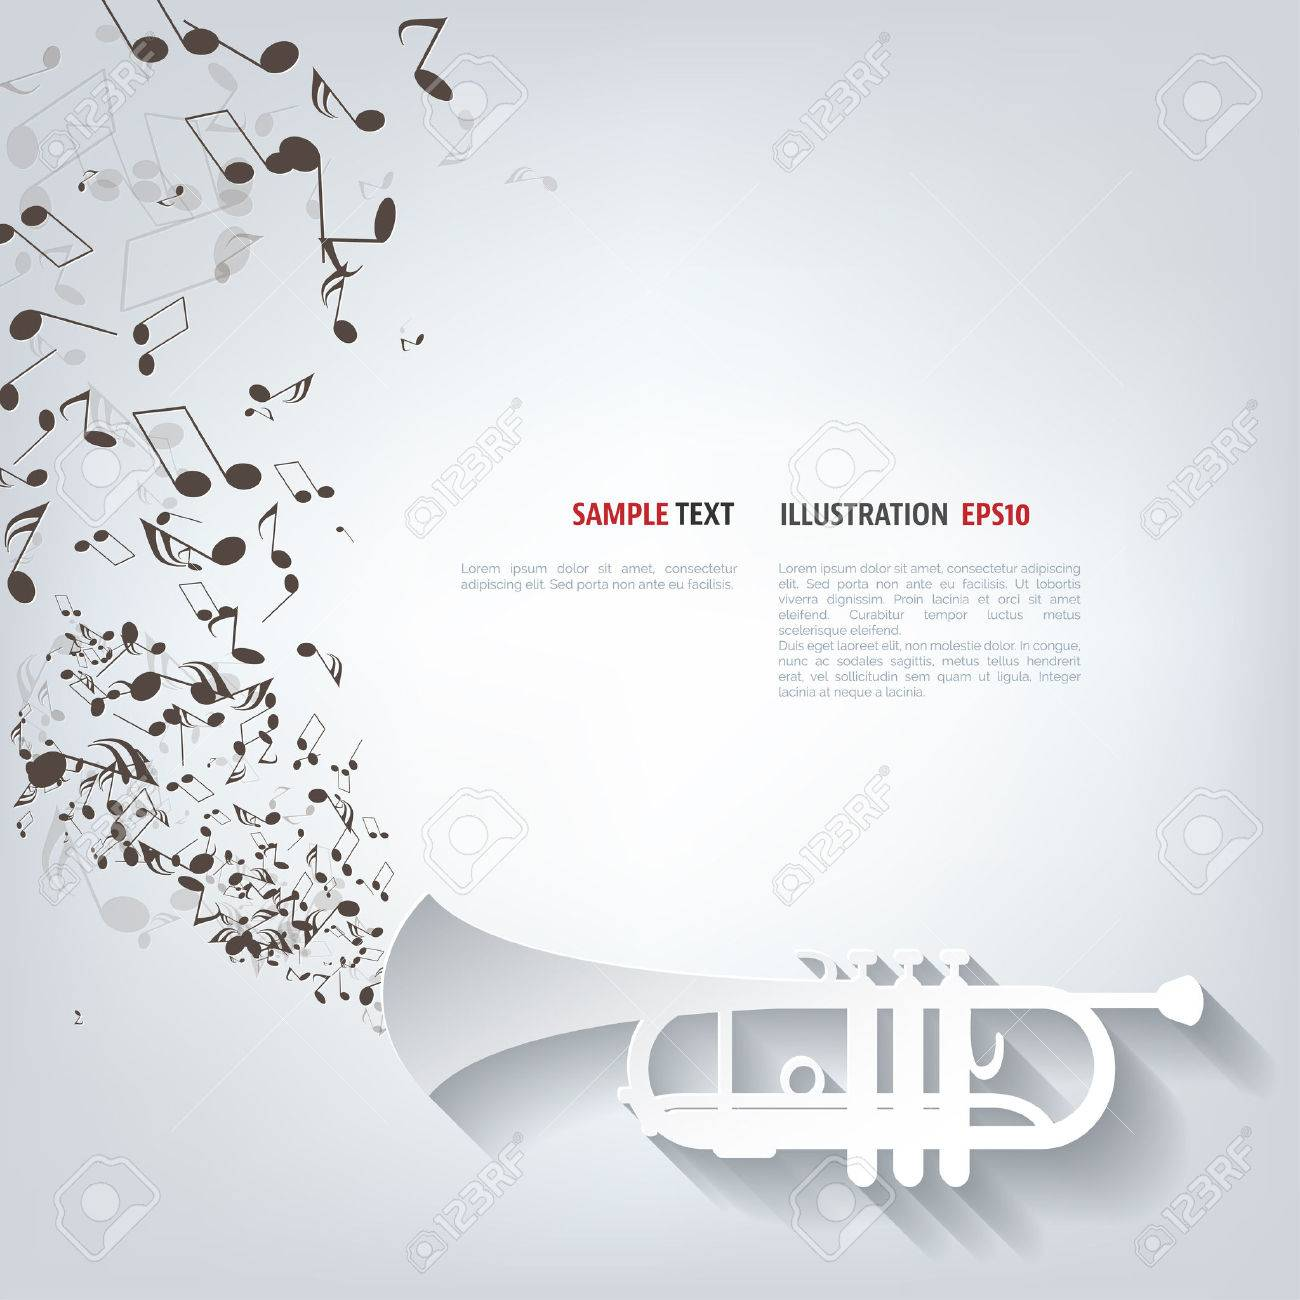 Music wind instruments icon - 38105976